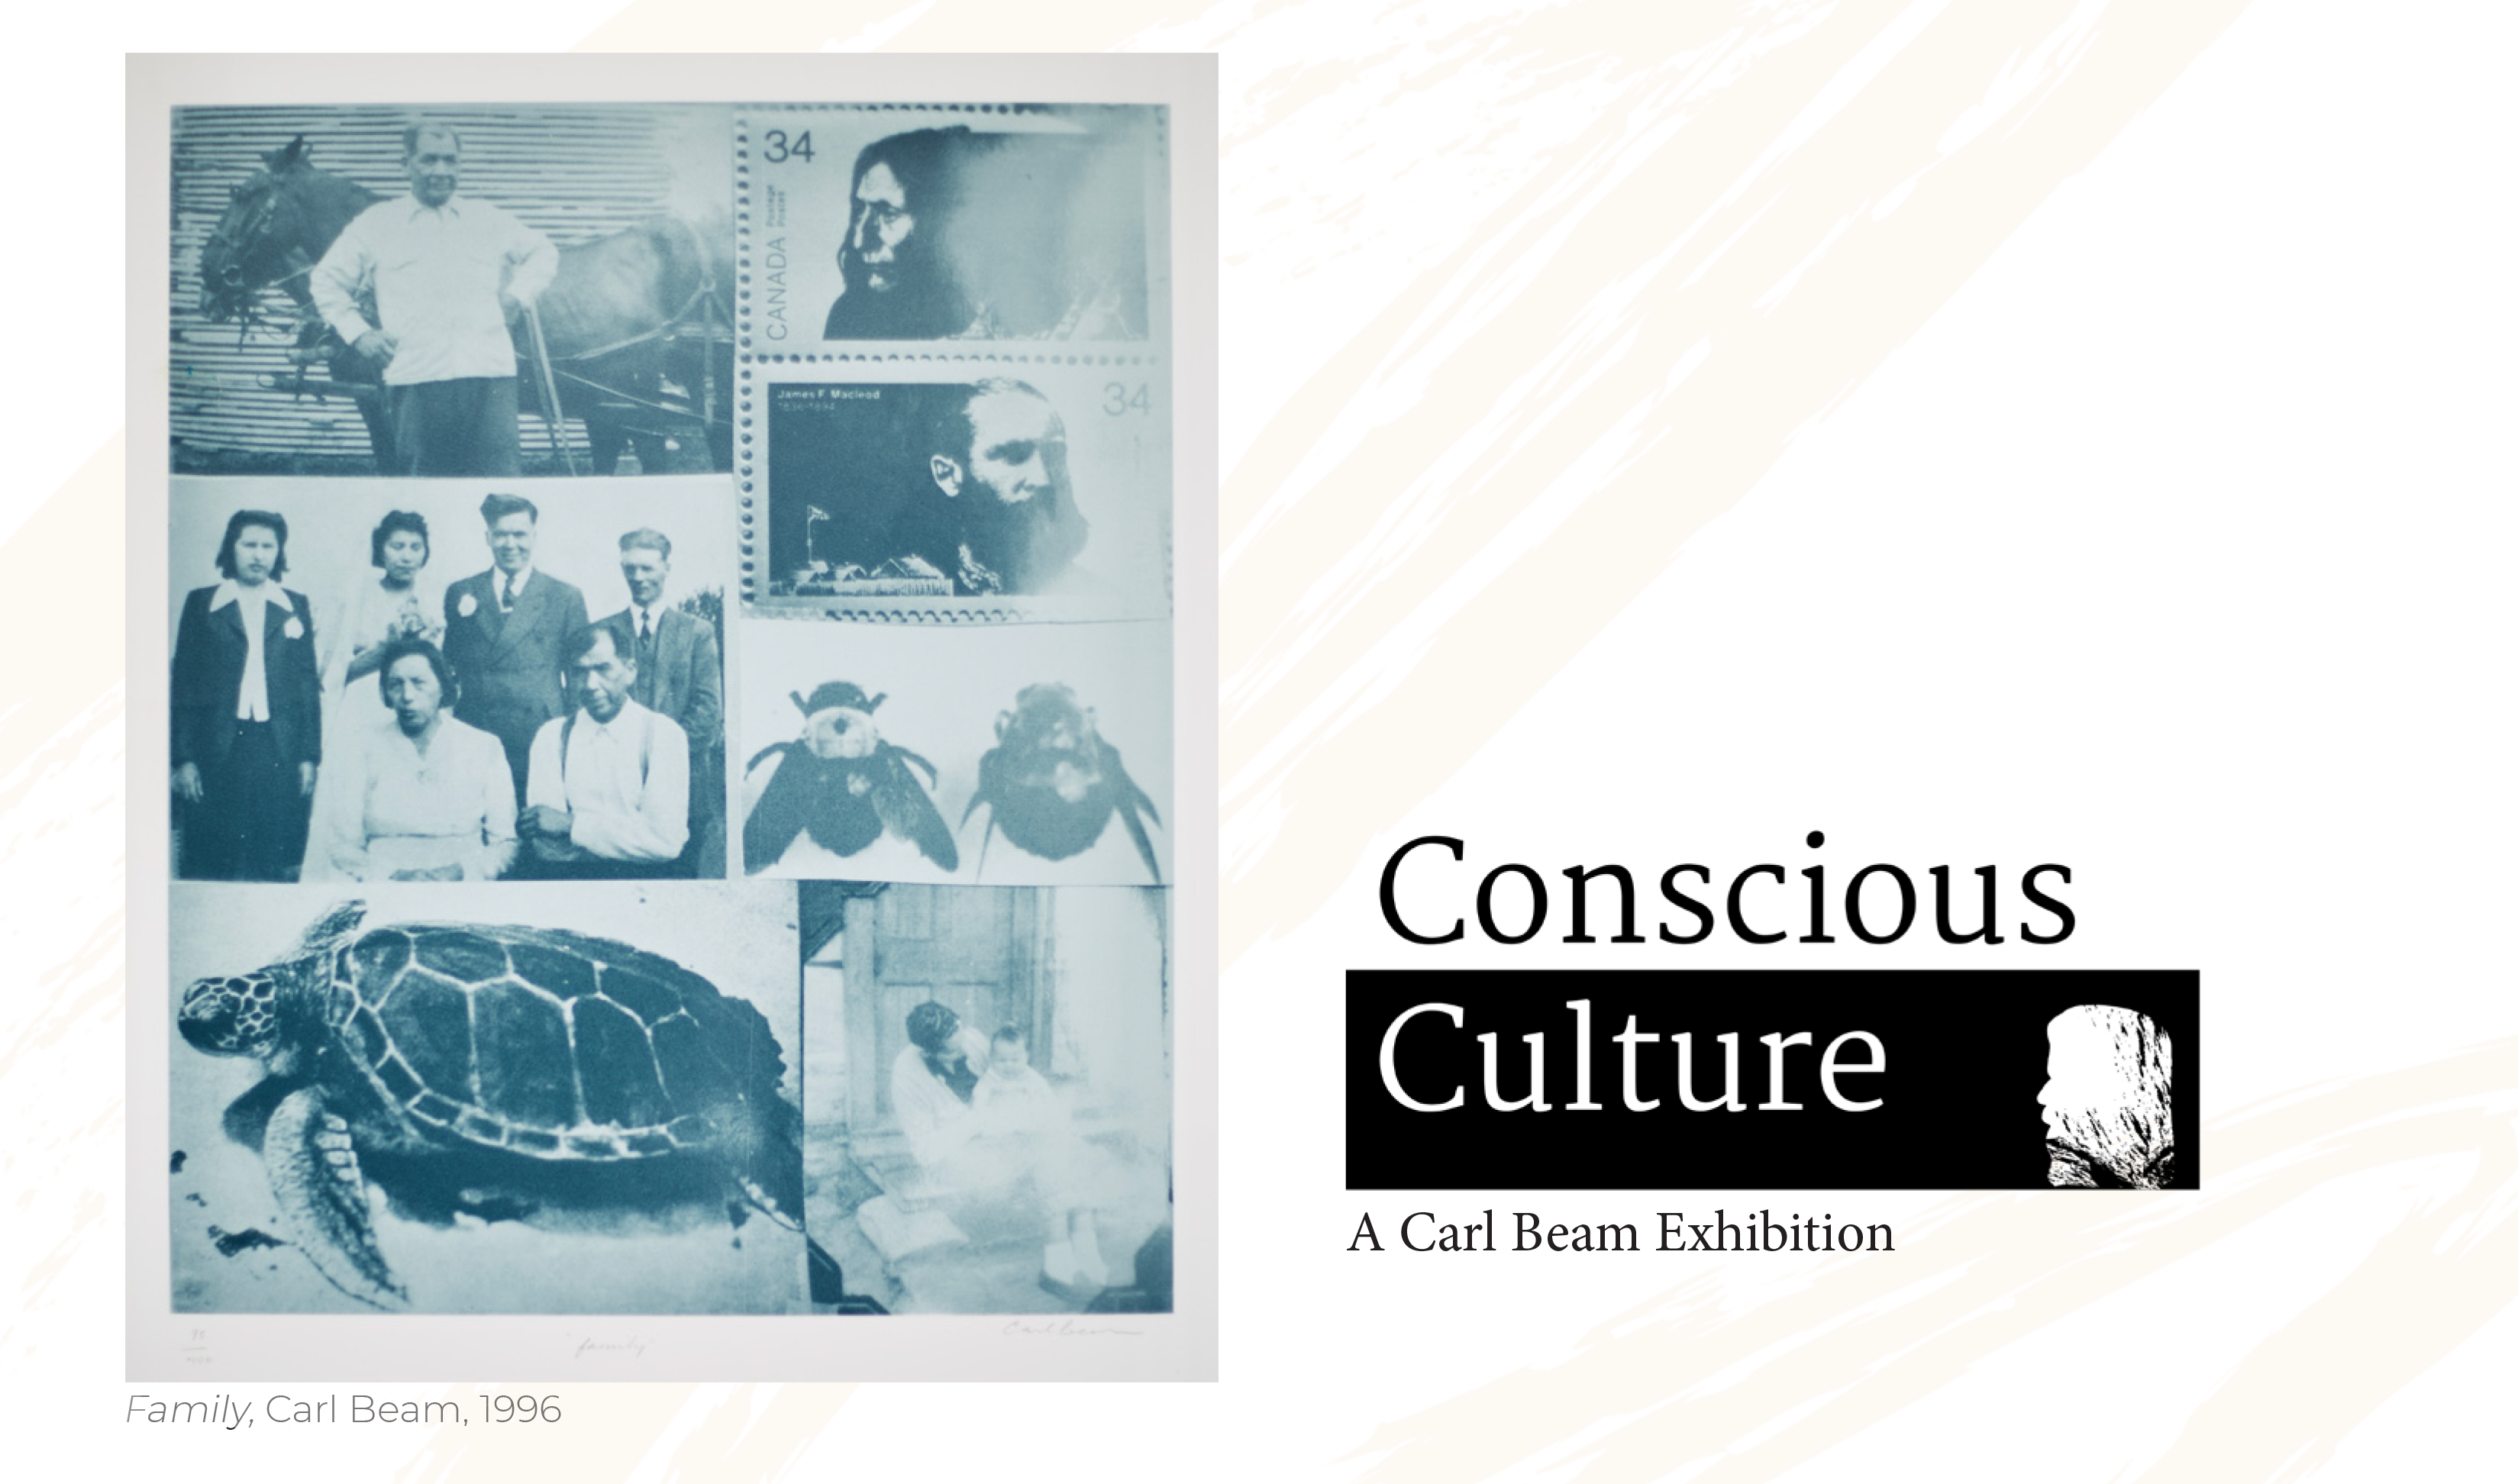 Conscious Culture: A Carl Beam Exhibition Collection